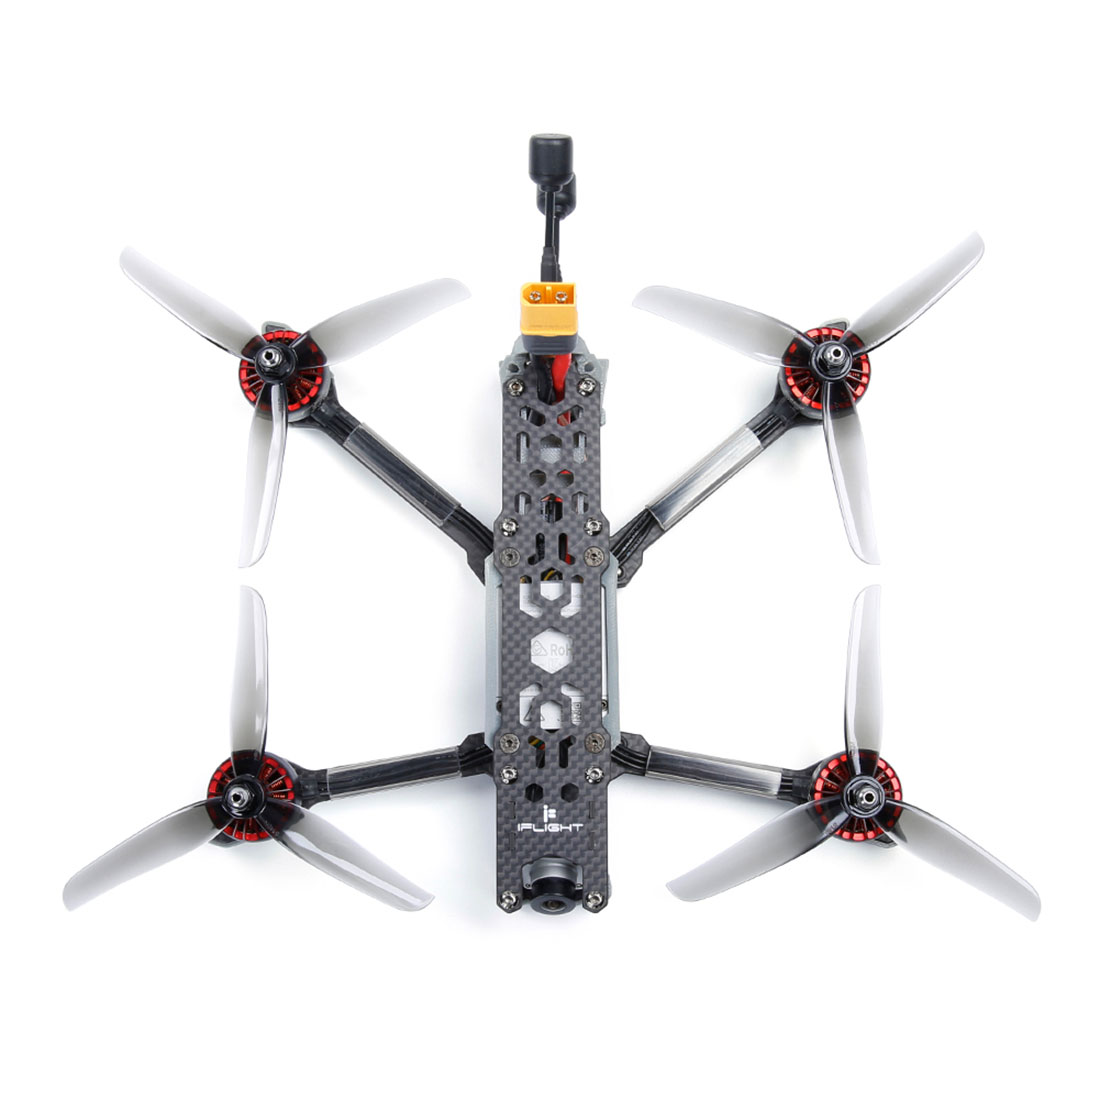 Image 5 - iFlight TITAN DC5 5inch 222mm 4s/6s HD FPV Racing Drone BNF SucceX D F7 50A Stack XING E 2207 2450/1800KV Motor Helicopter ToyParts & Accessories   -